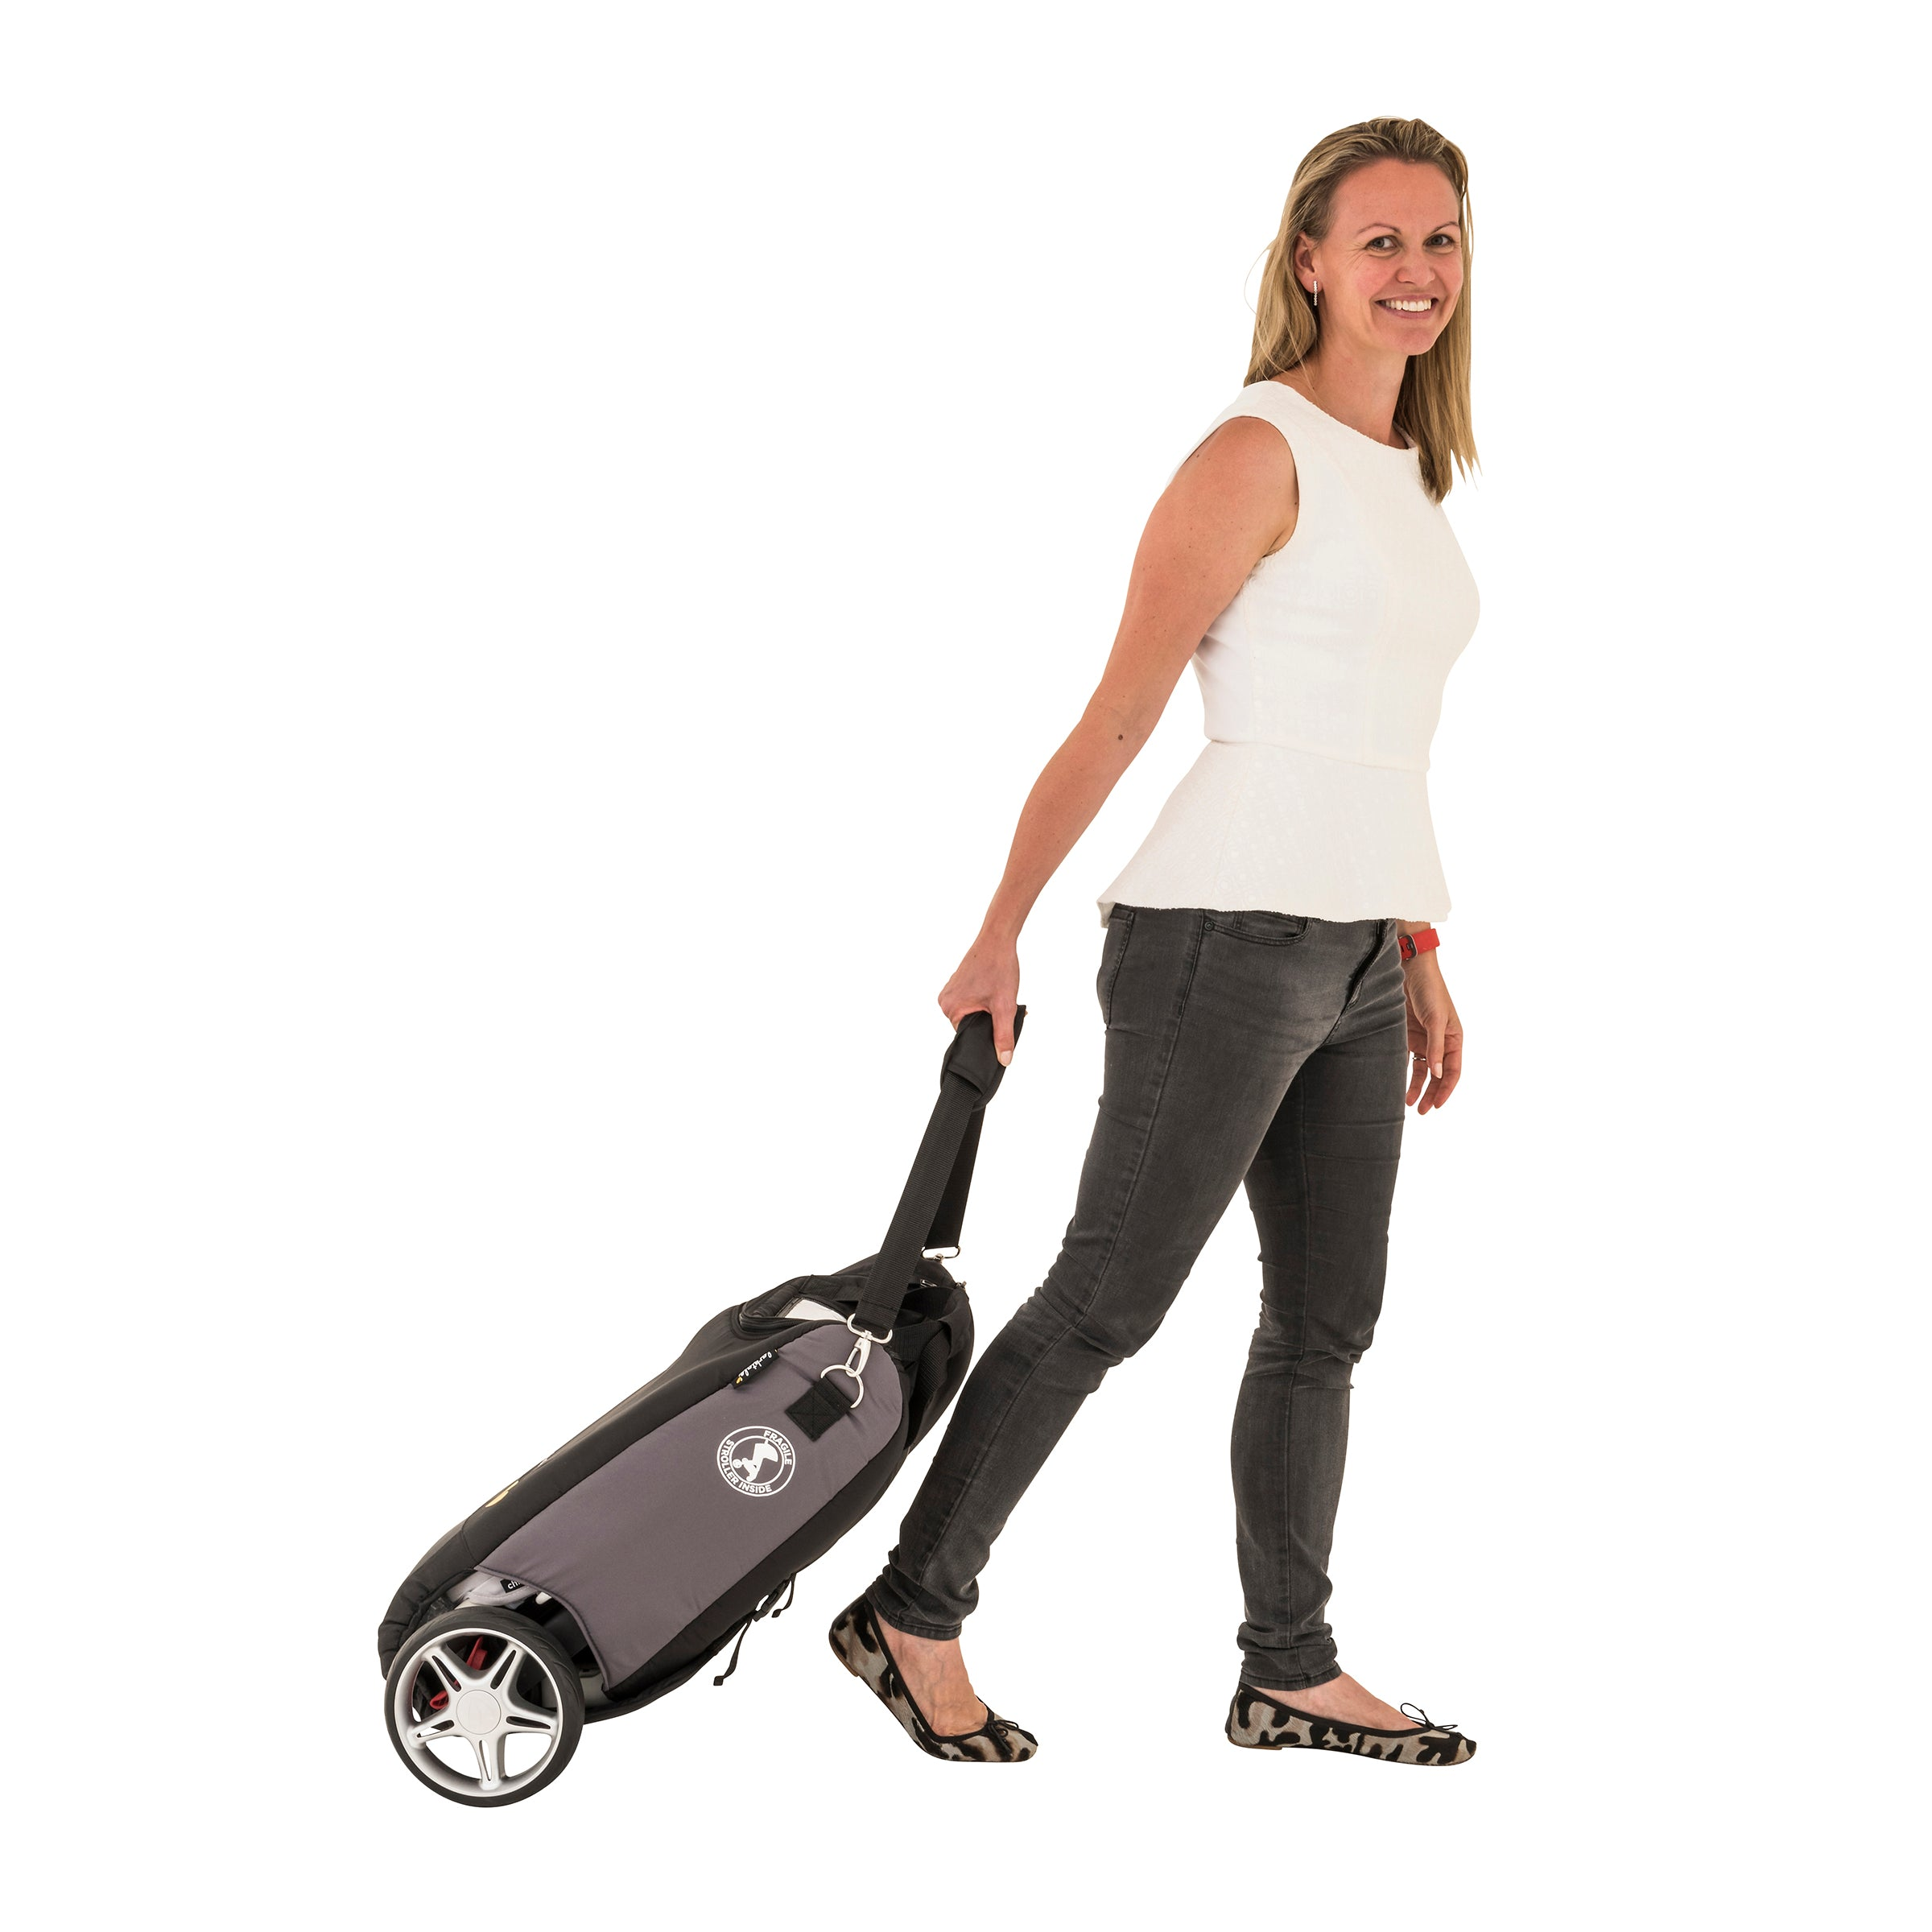 travel bag. stroller travel. stroller carry bag. travel with your stroller. woman wheels the chit chat stroller in the travel bag along like luggage